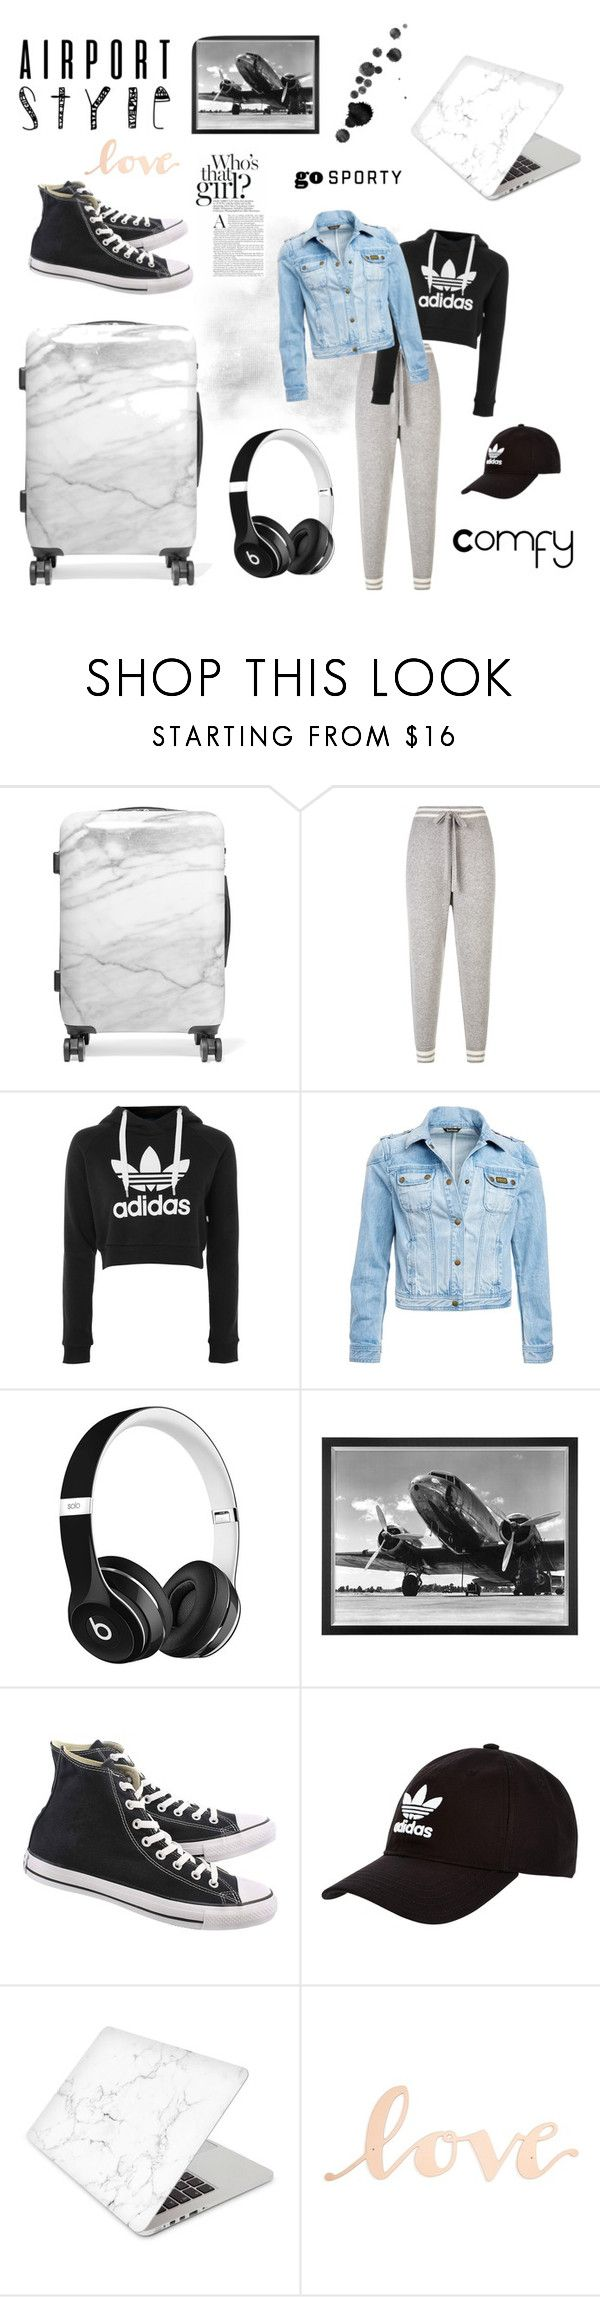 """Comfy AirPort Outfit"" by isabel-zagers ❤ liked on Polyvore featuring CalPak, ZoÃ« Jordan, adidas, Barbour International, Beats by Dr. Dre, Eichholtz, Converse, adidas Originals, Recover and Primitives By Kathy"